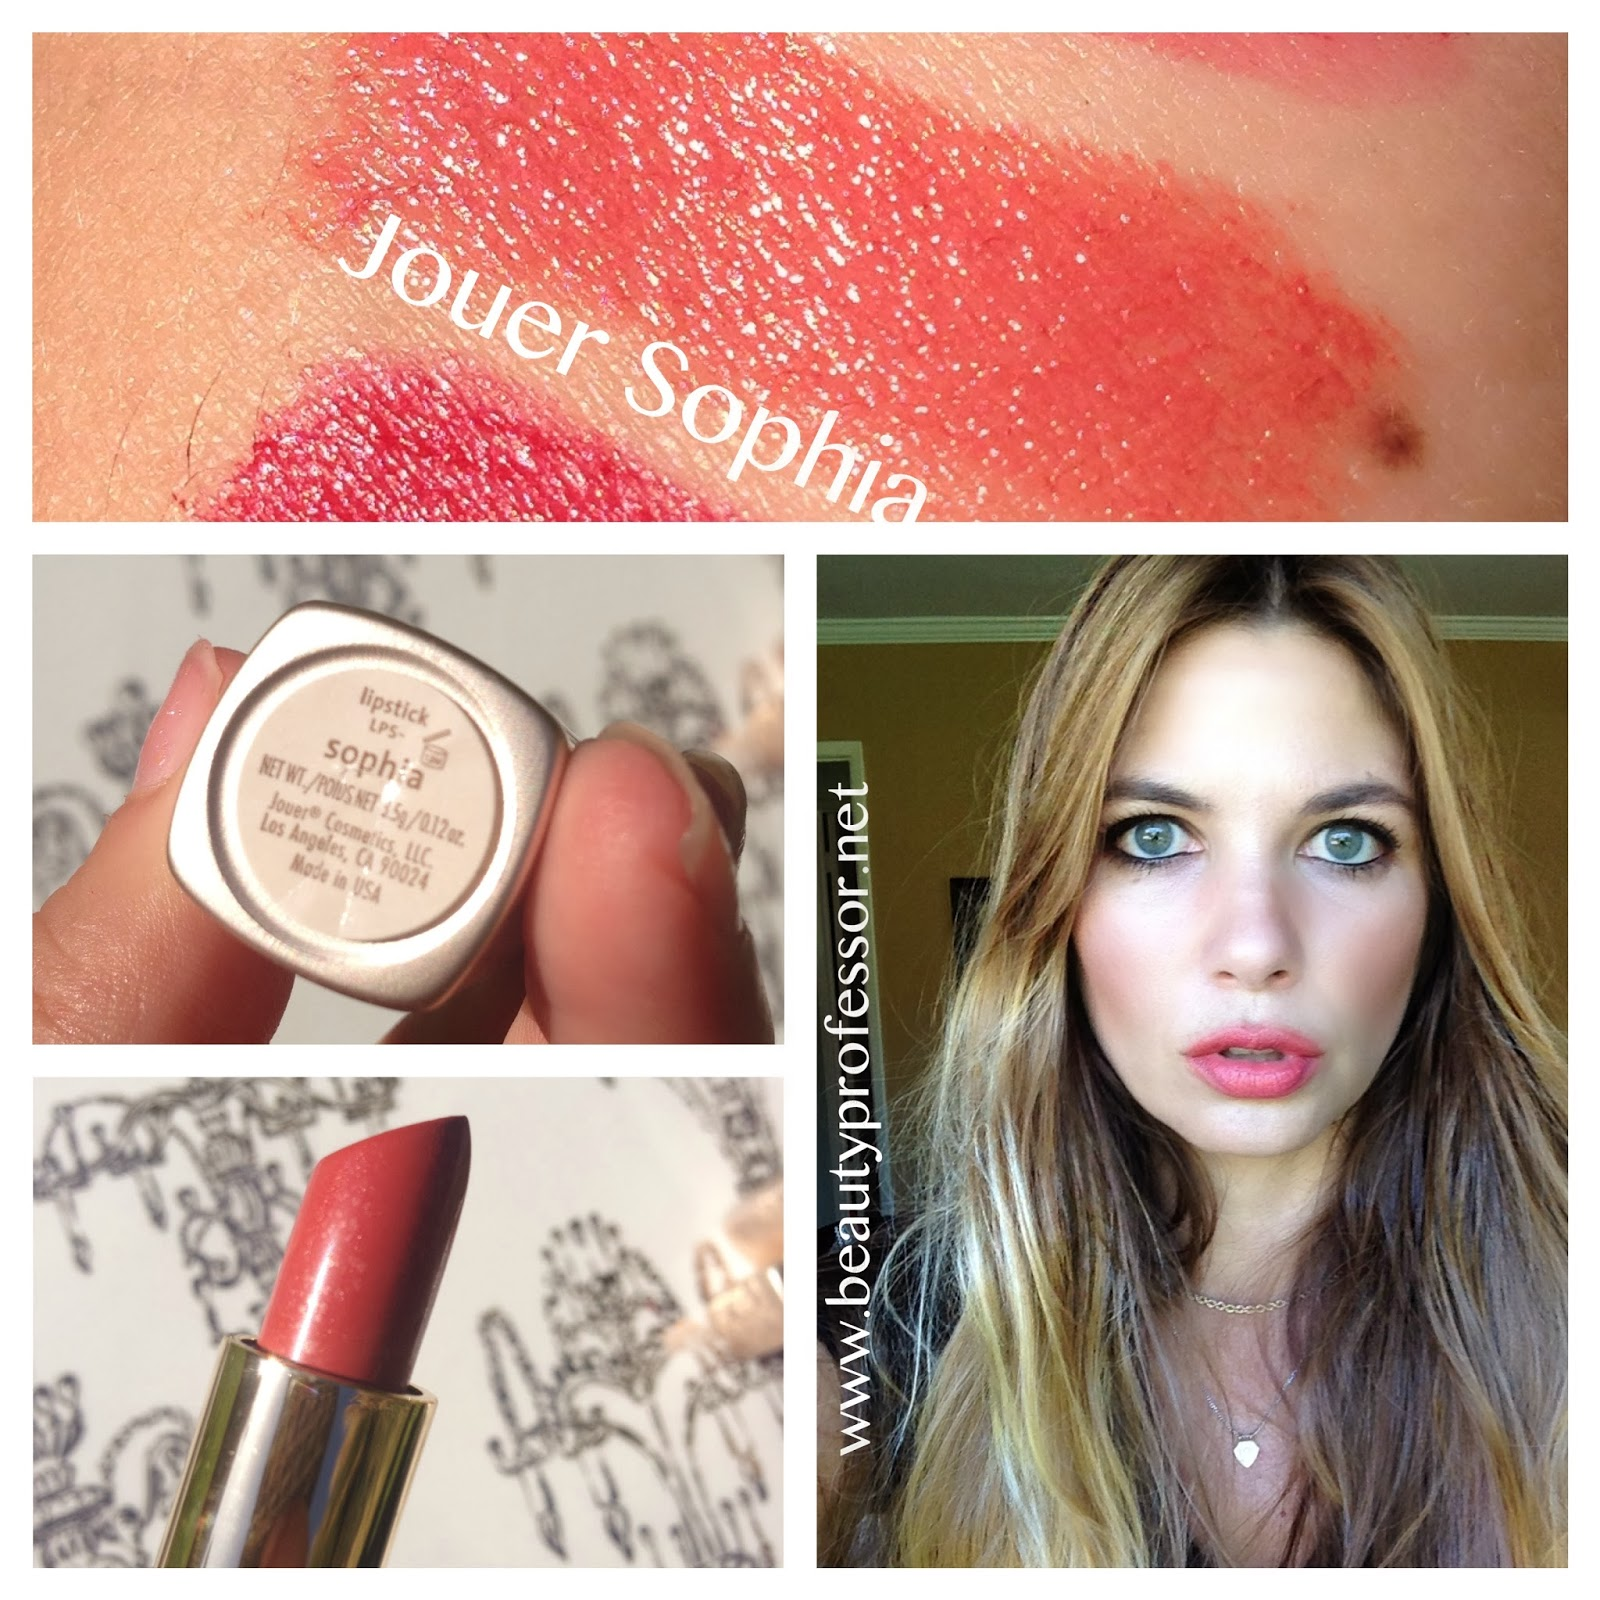 Beauty Professor November 2013 Brunbrun Paris Ultra Rich Lipstick Liquorice Above All Things Jouer Sophia